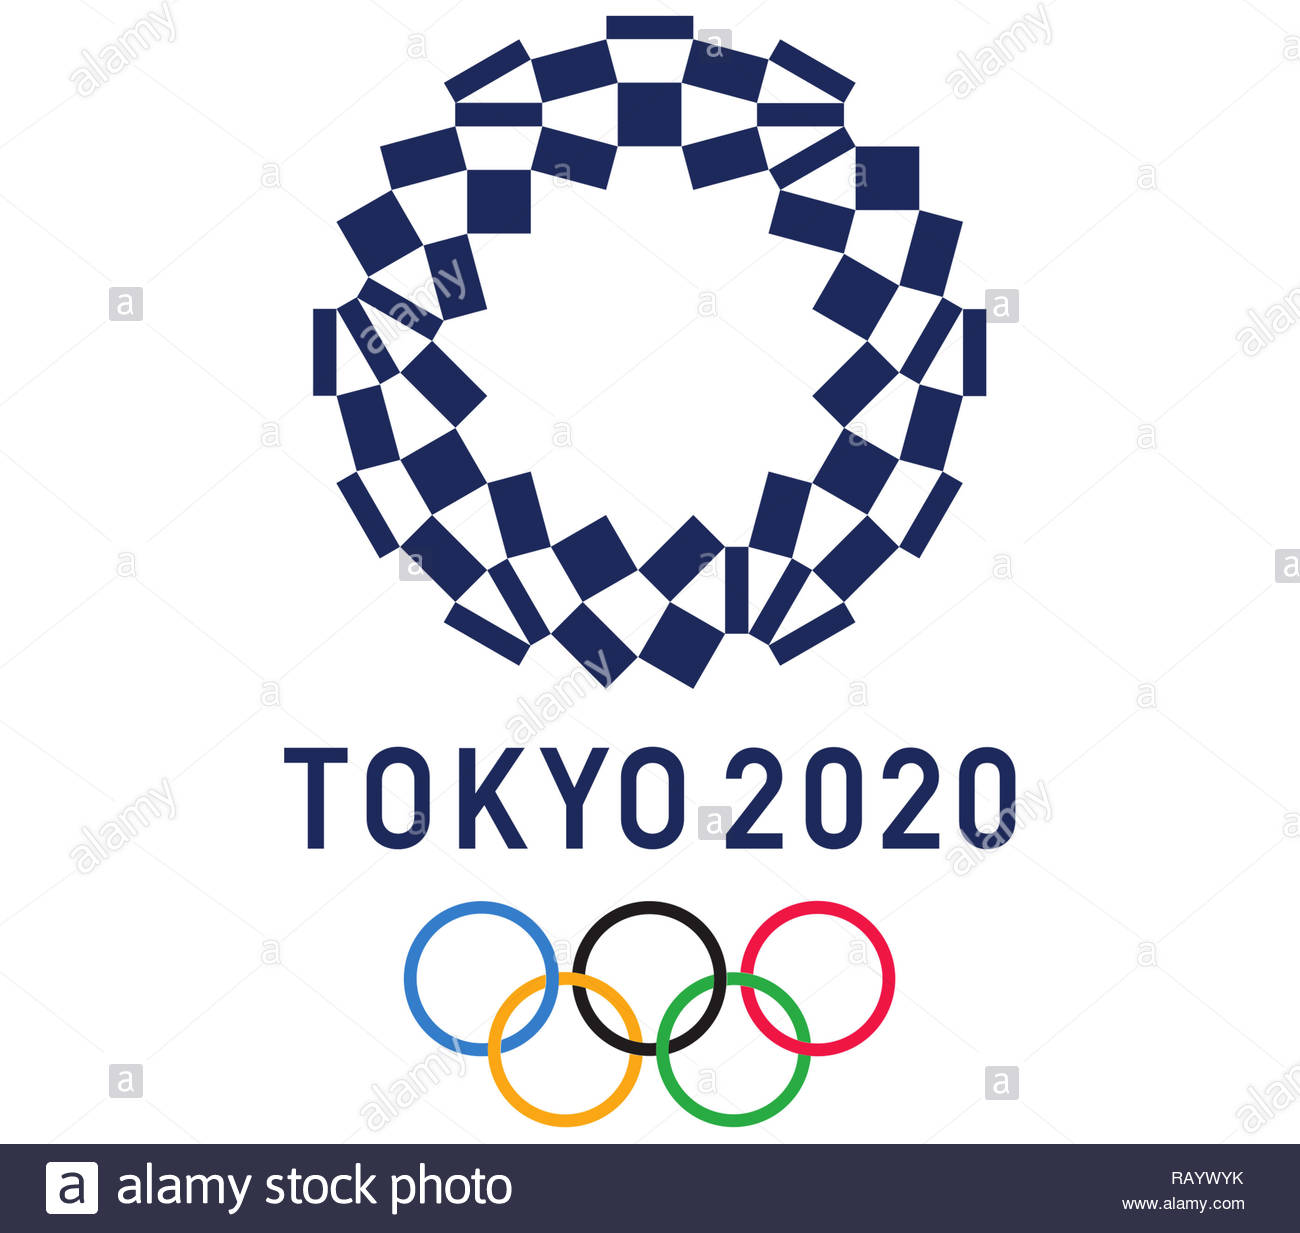 2020 Olympic Games.Tokyo 2020 Olympic Games Logo Stock Photo 230494423 Alamy